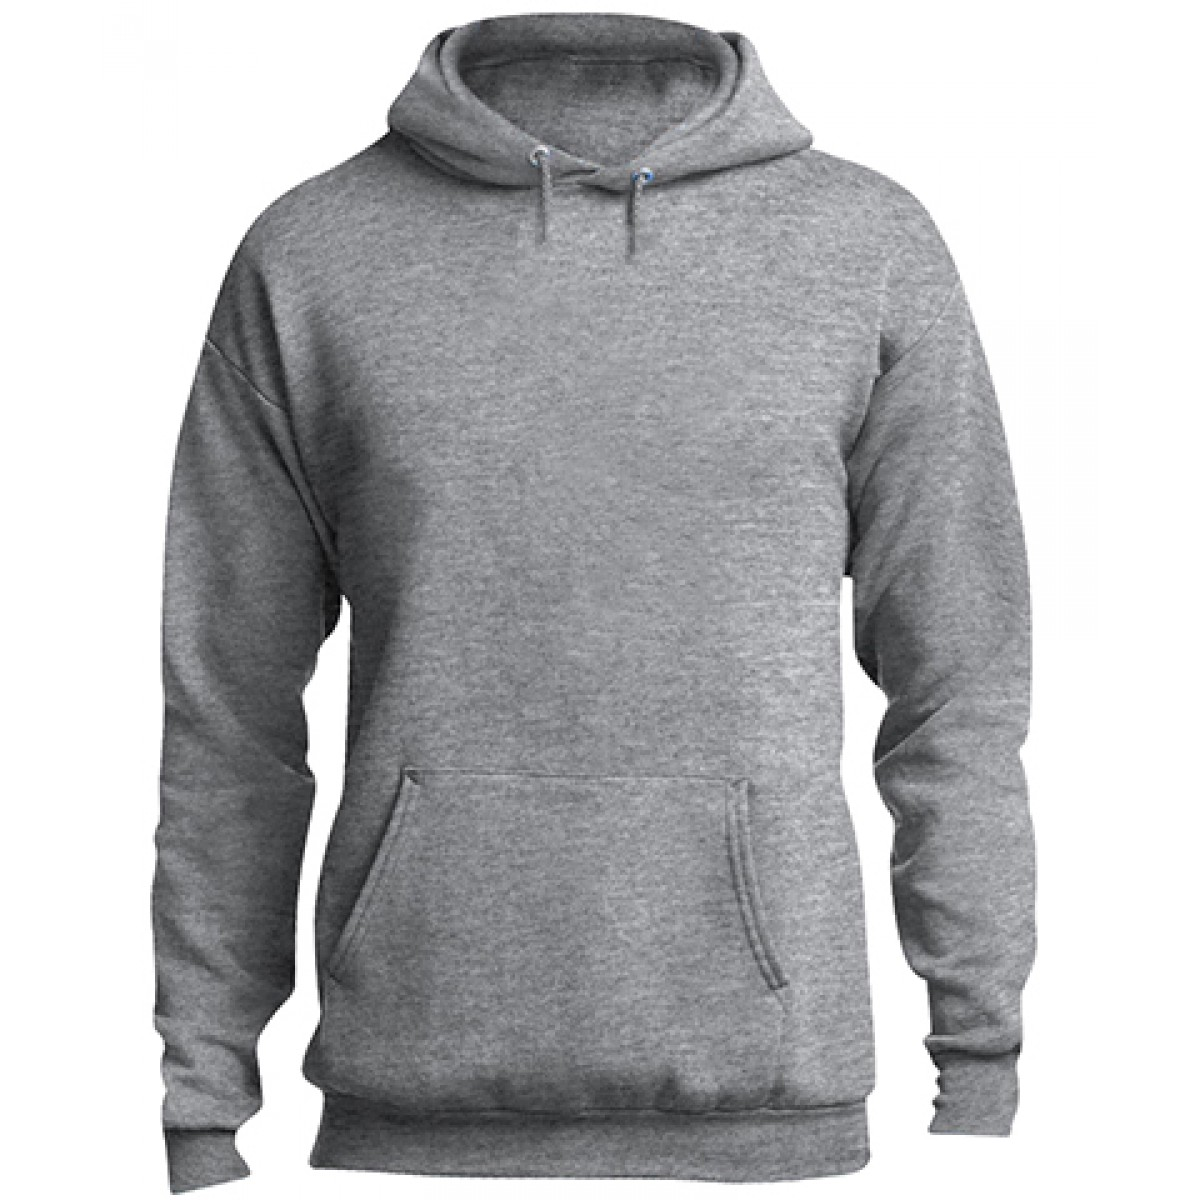 Classic Pullover Hooded Sweatshirt-Athletic Heather-2XL